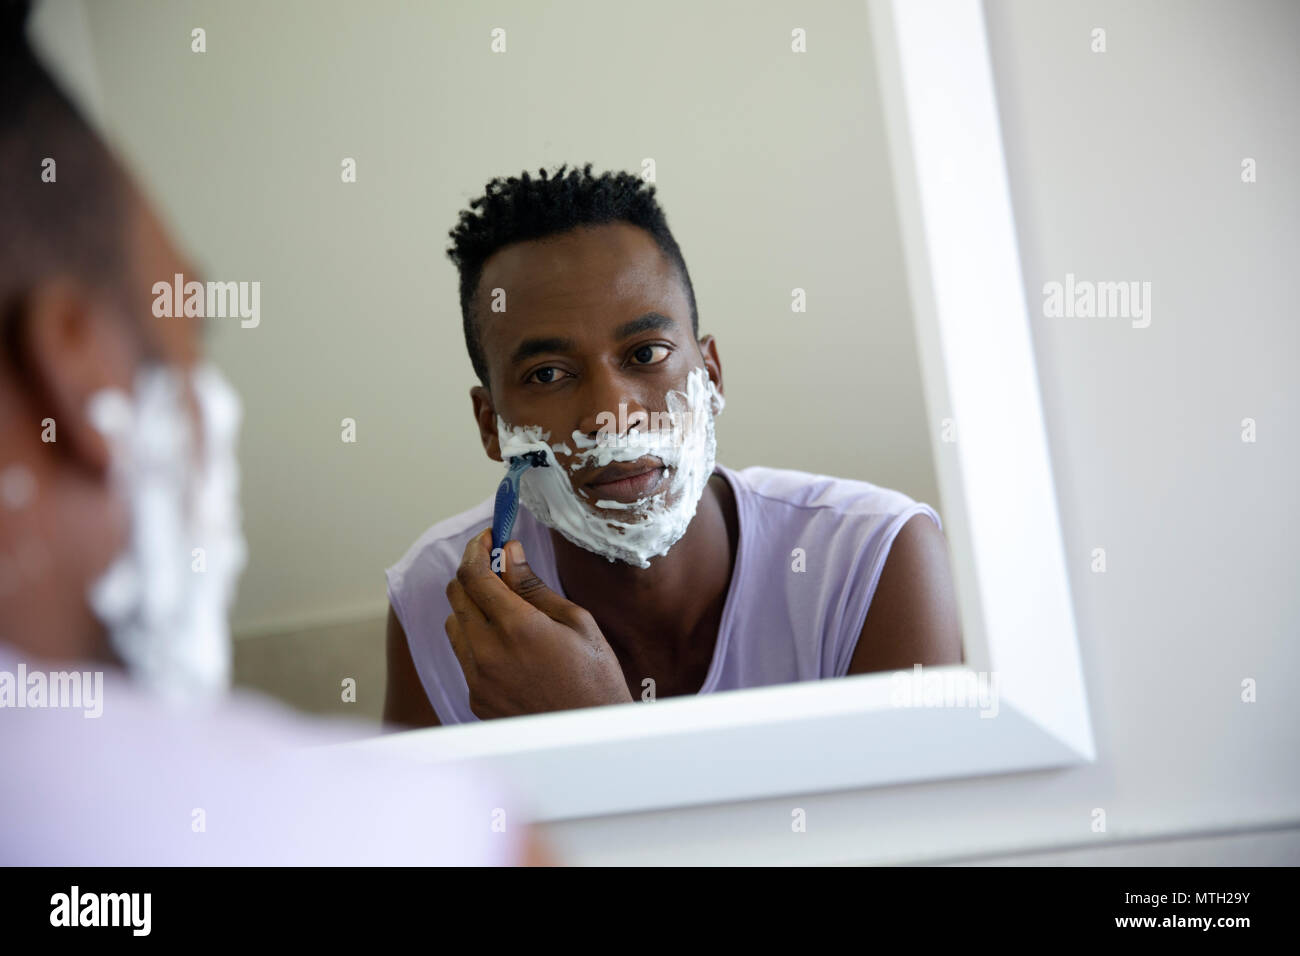 Man shaving in the mirror Stock Photo